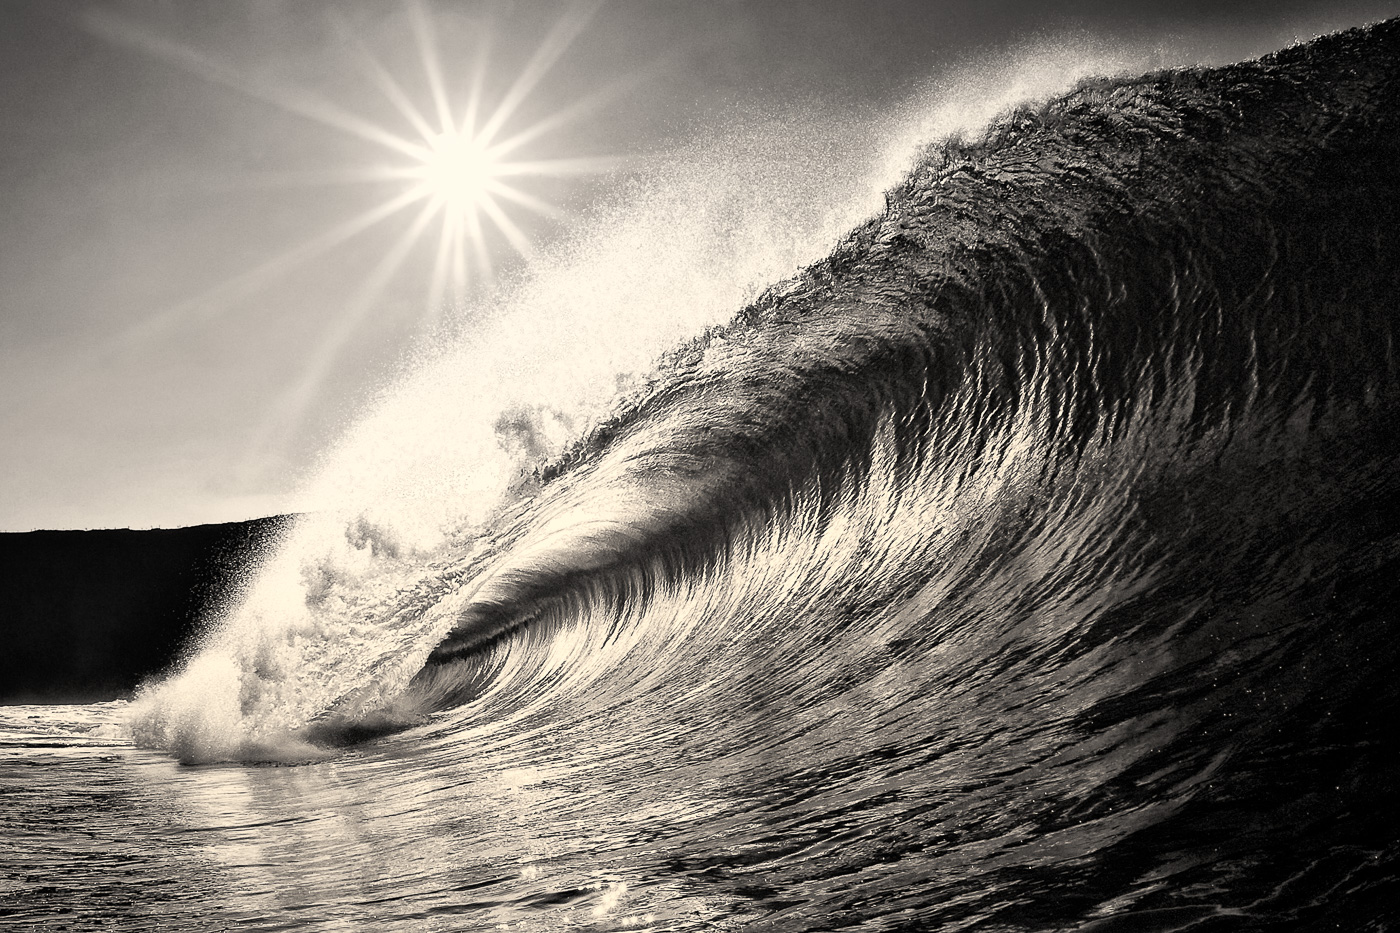 beautiful wave photos in black and white